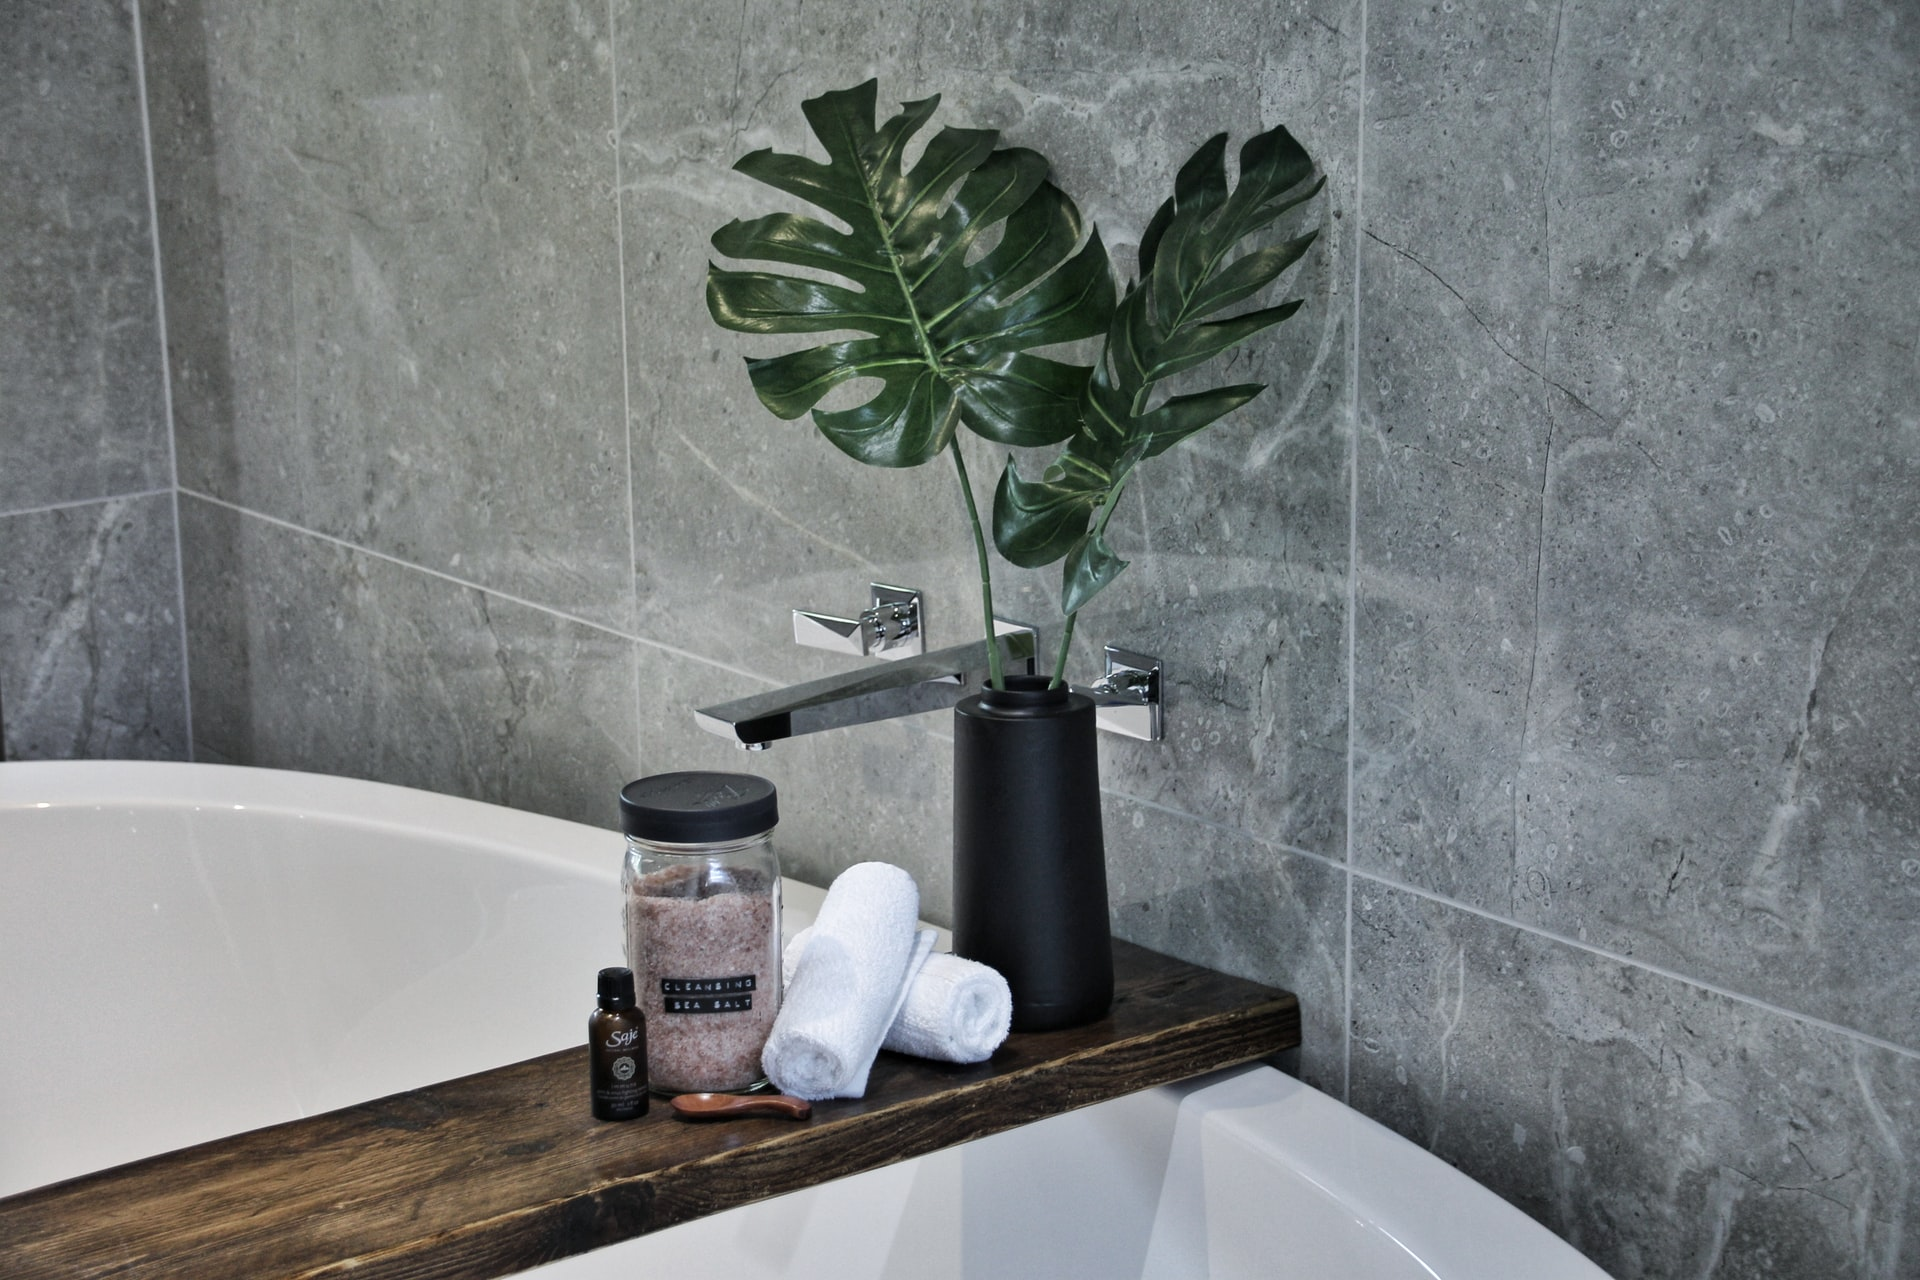 Grey and White Bathroom by Micheal Copley